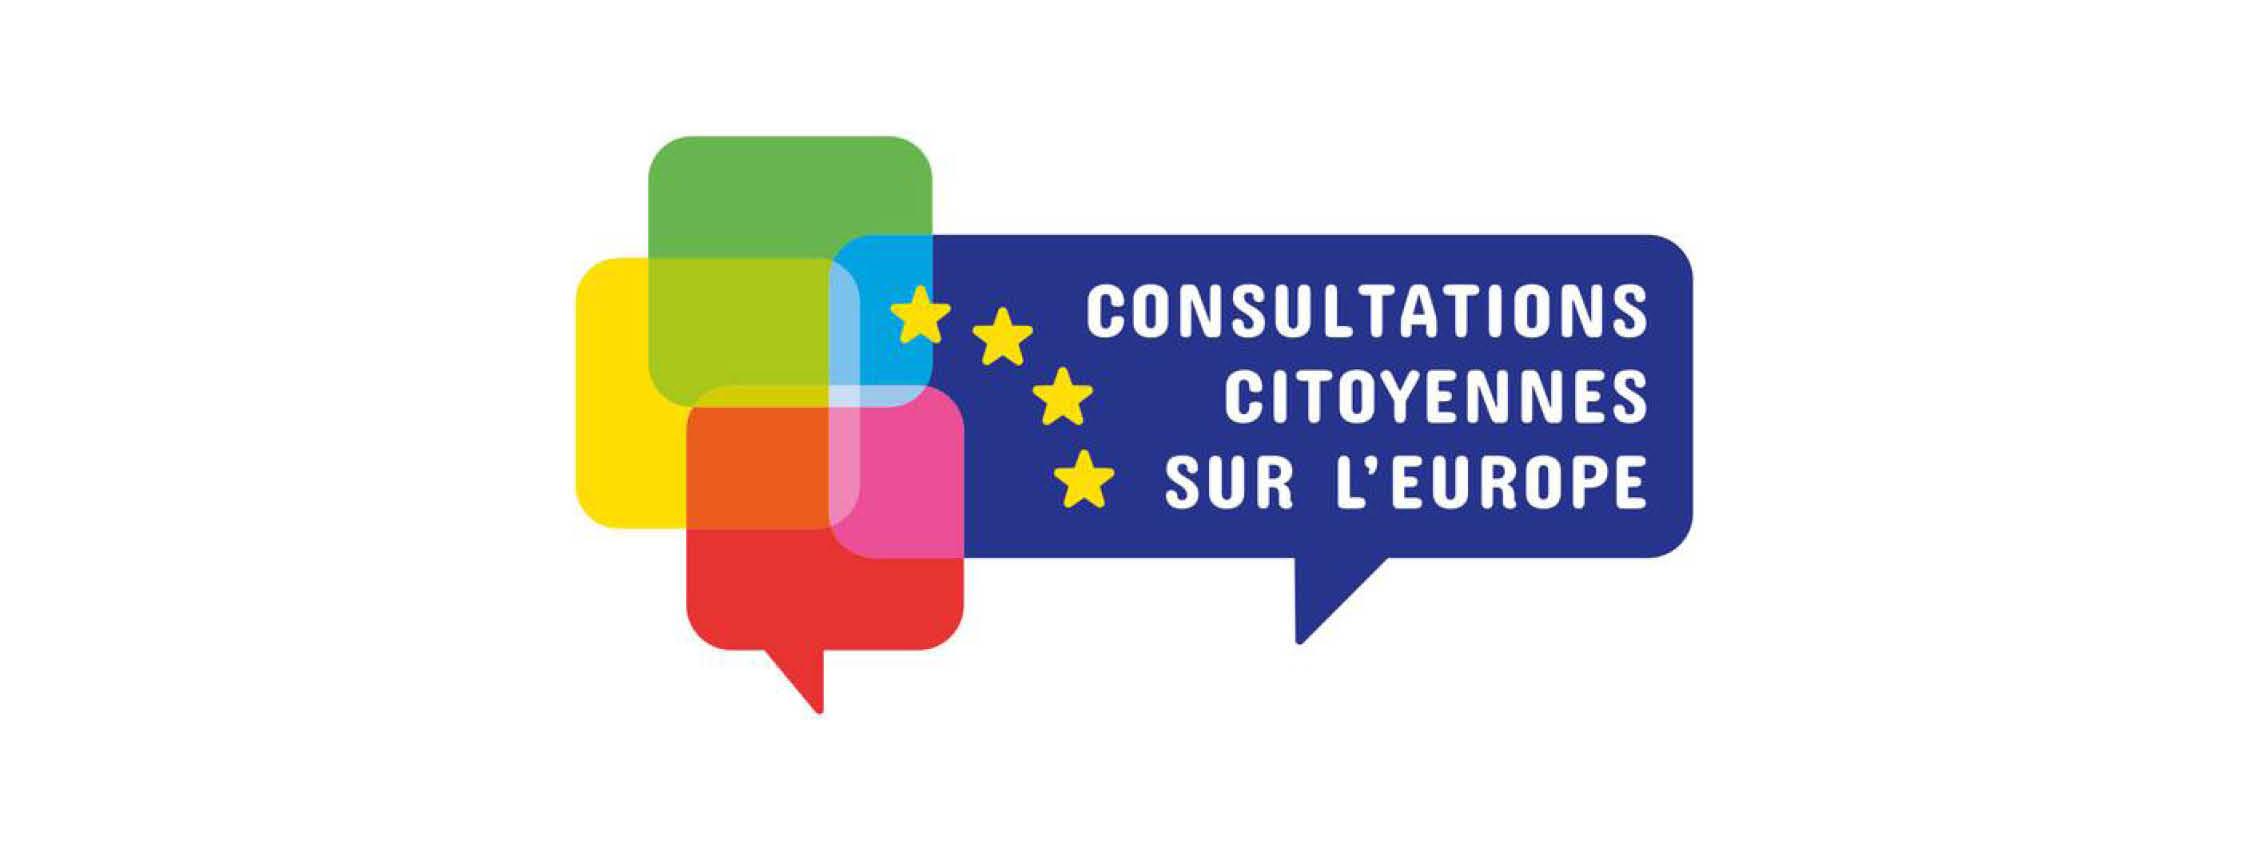 Consultations citoyennes